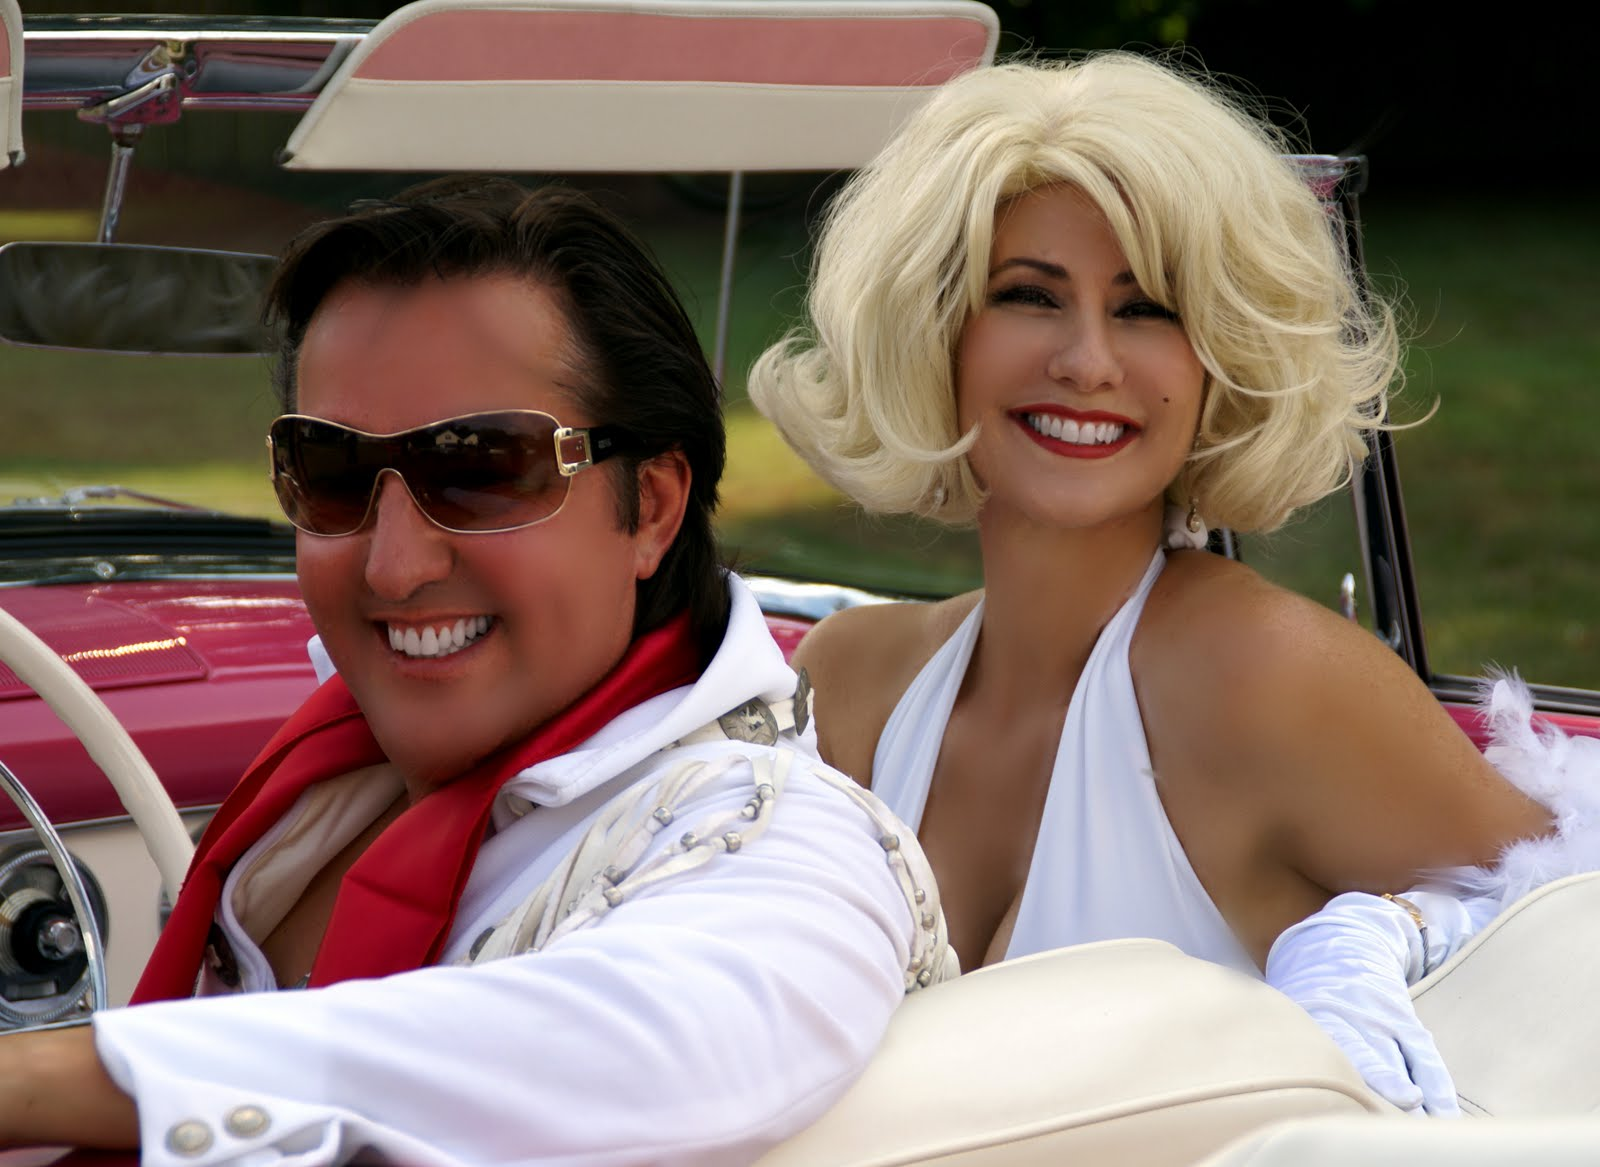 Elvis Marilyn Monroe Nashville Elvis Impersonator Blog Find Your Inner Elvis Marilyn